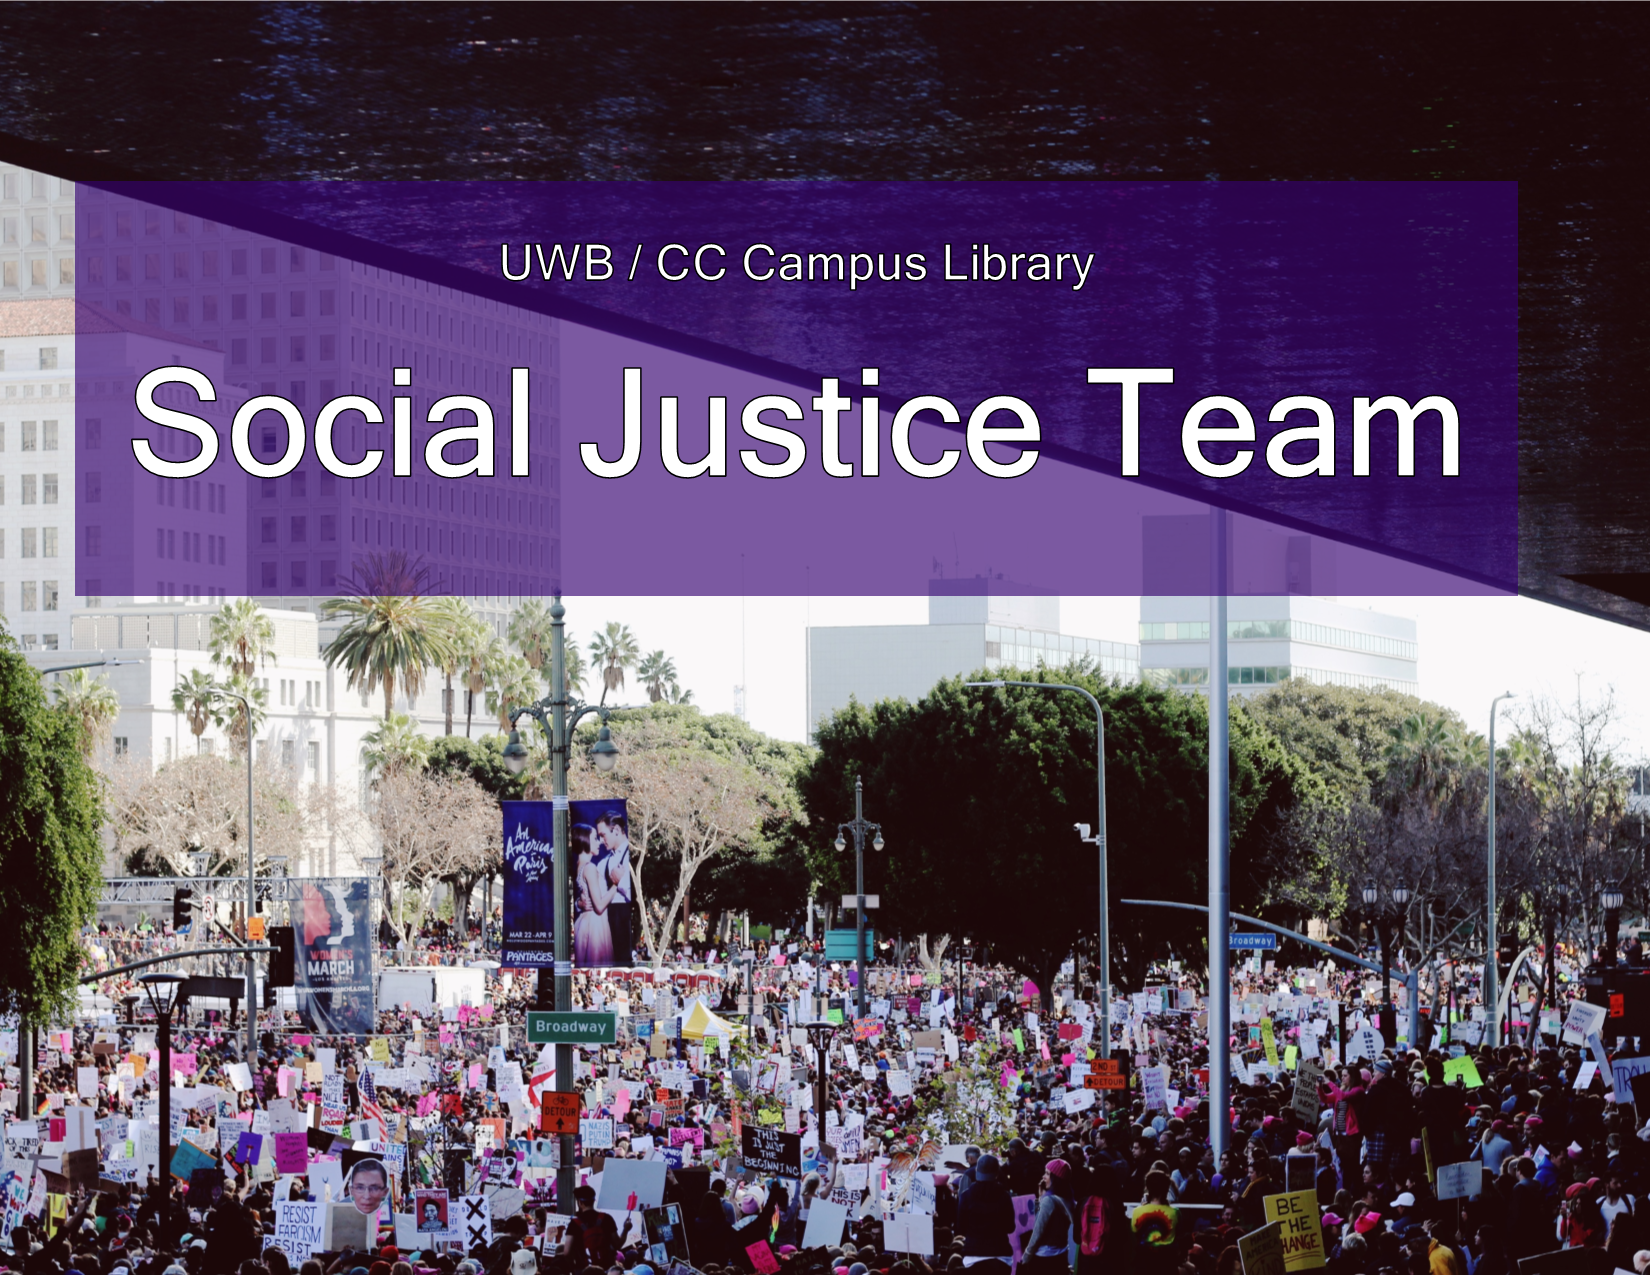 reads: UWB / CC Campus Library Social Justice Team